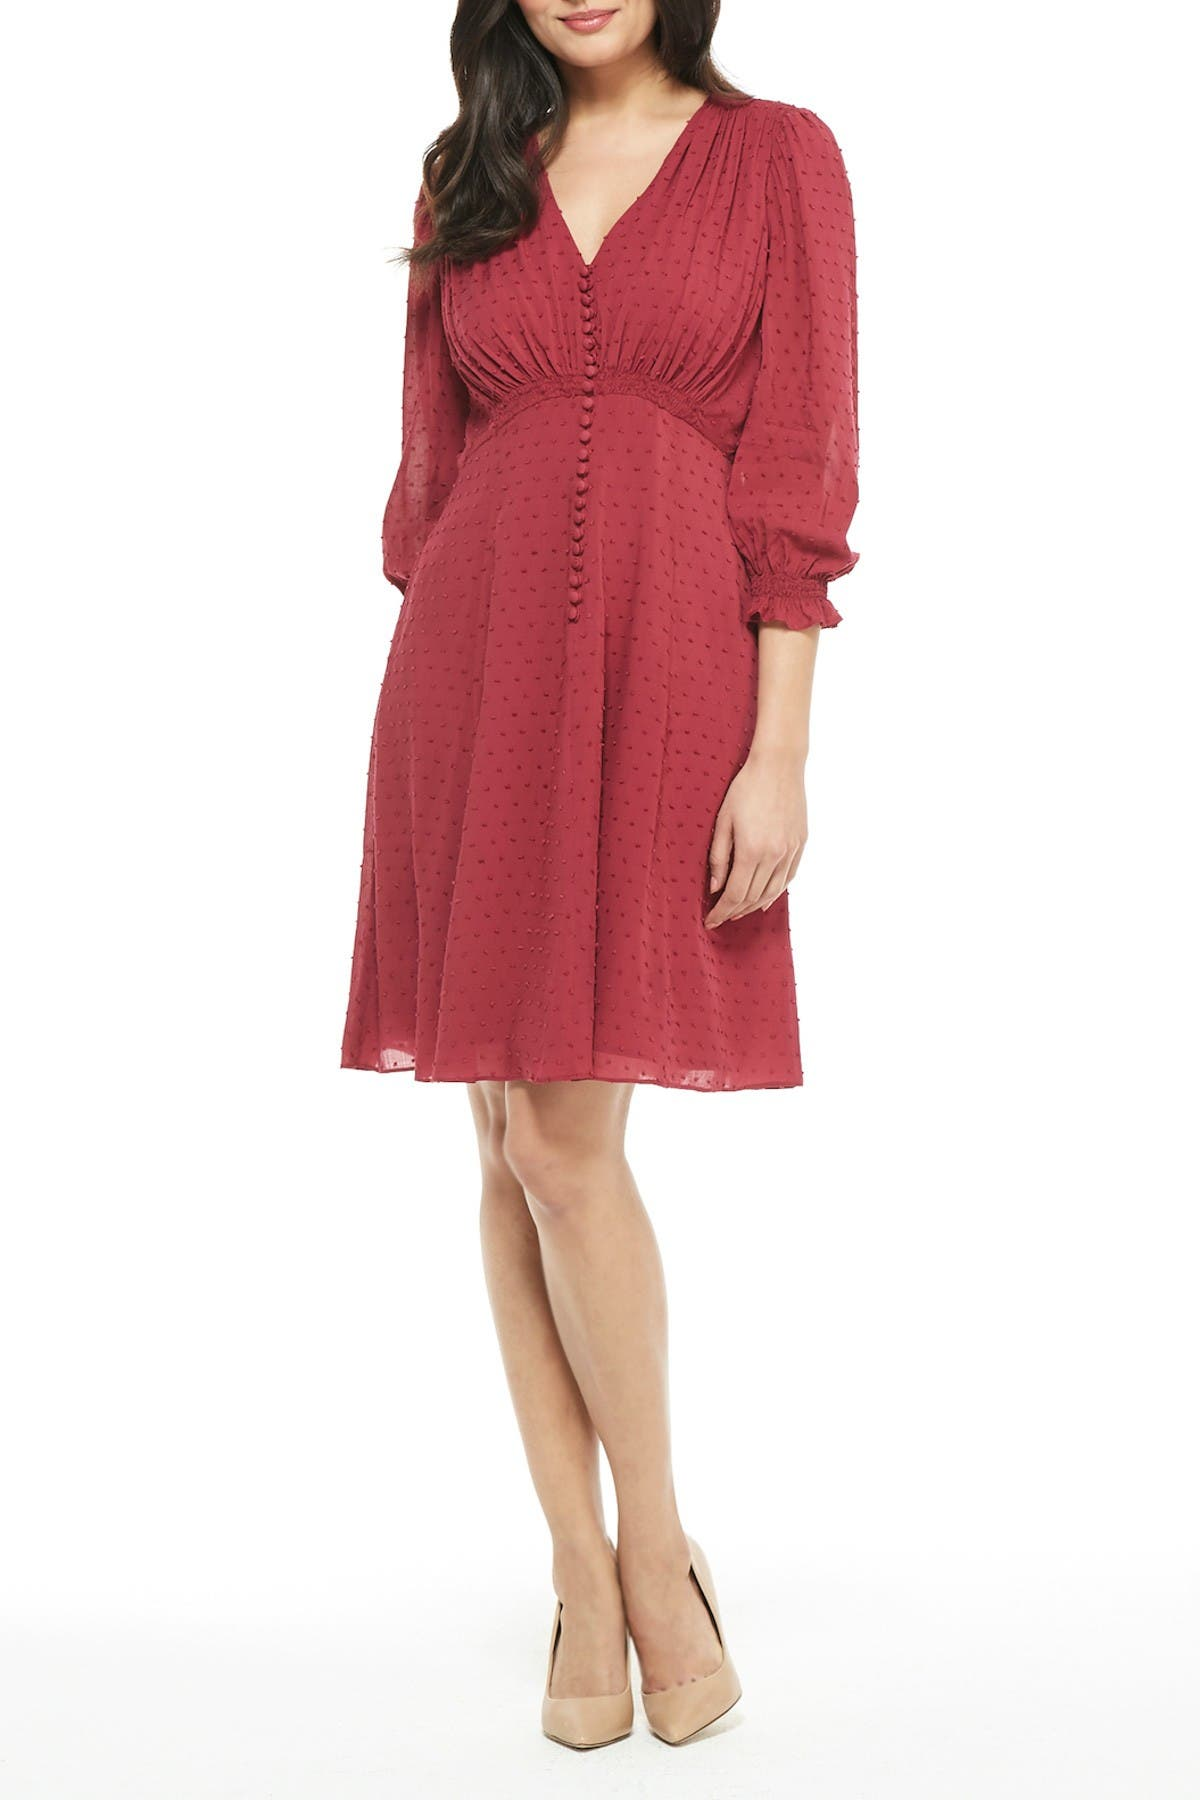 Image of Gal Meets Glam Andrea Button Front A-Line Dress